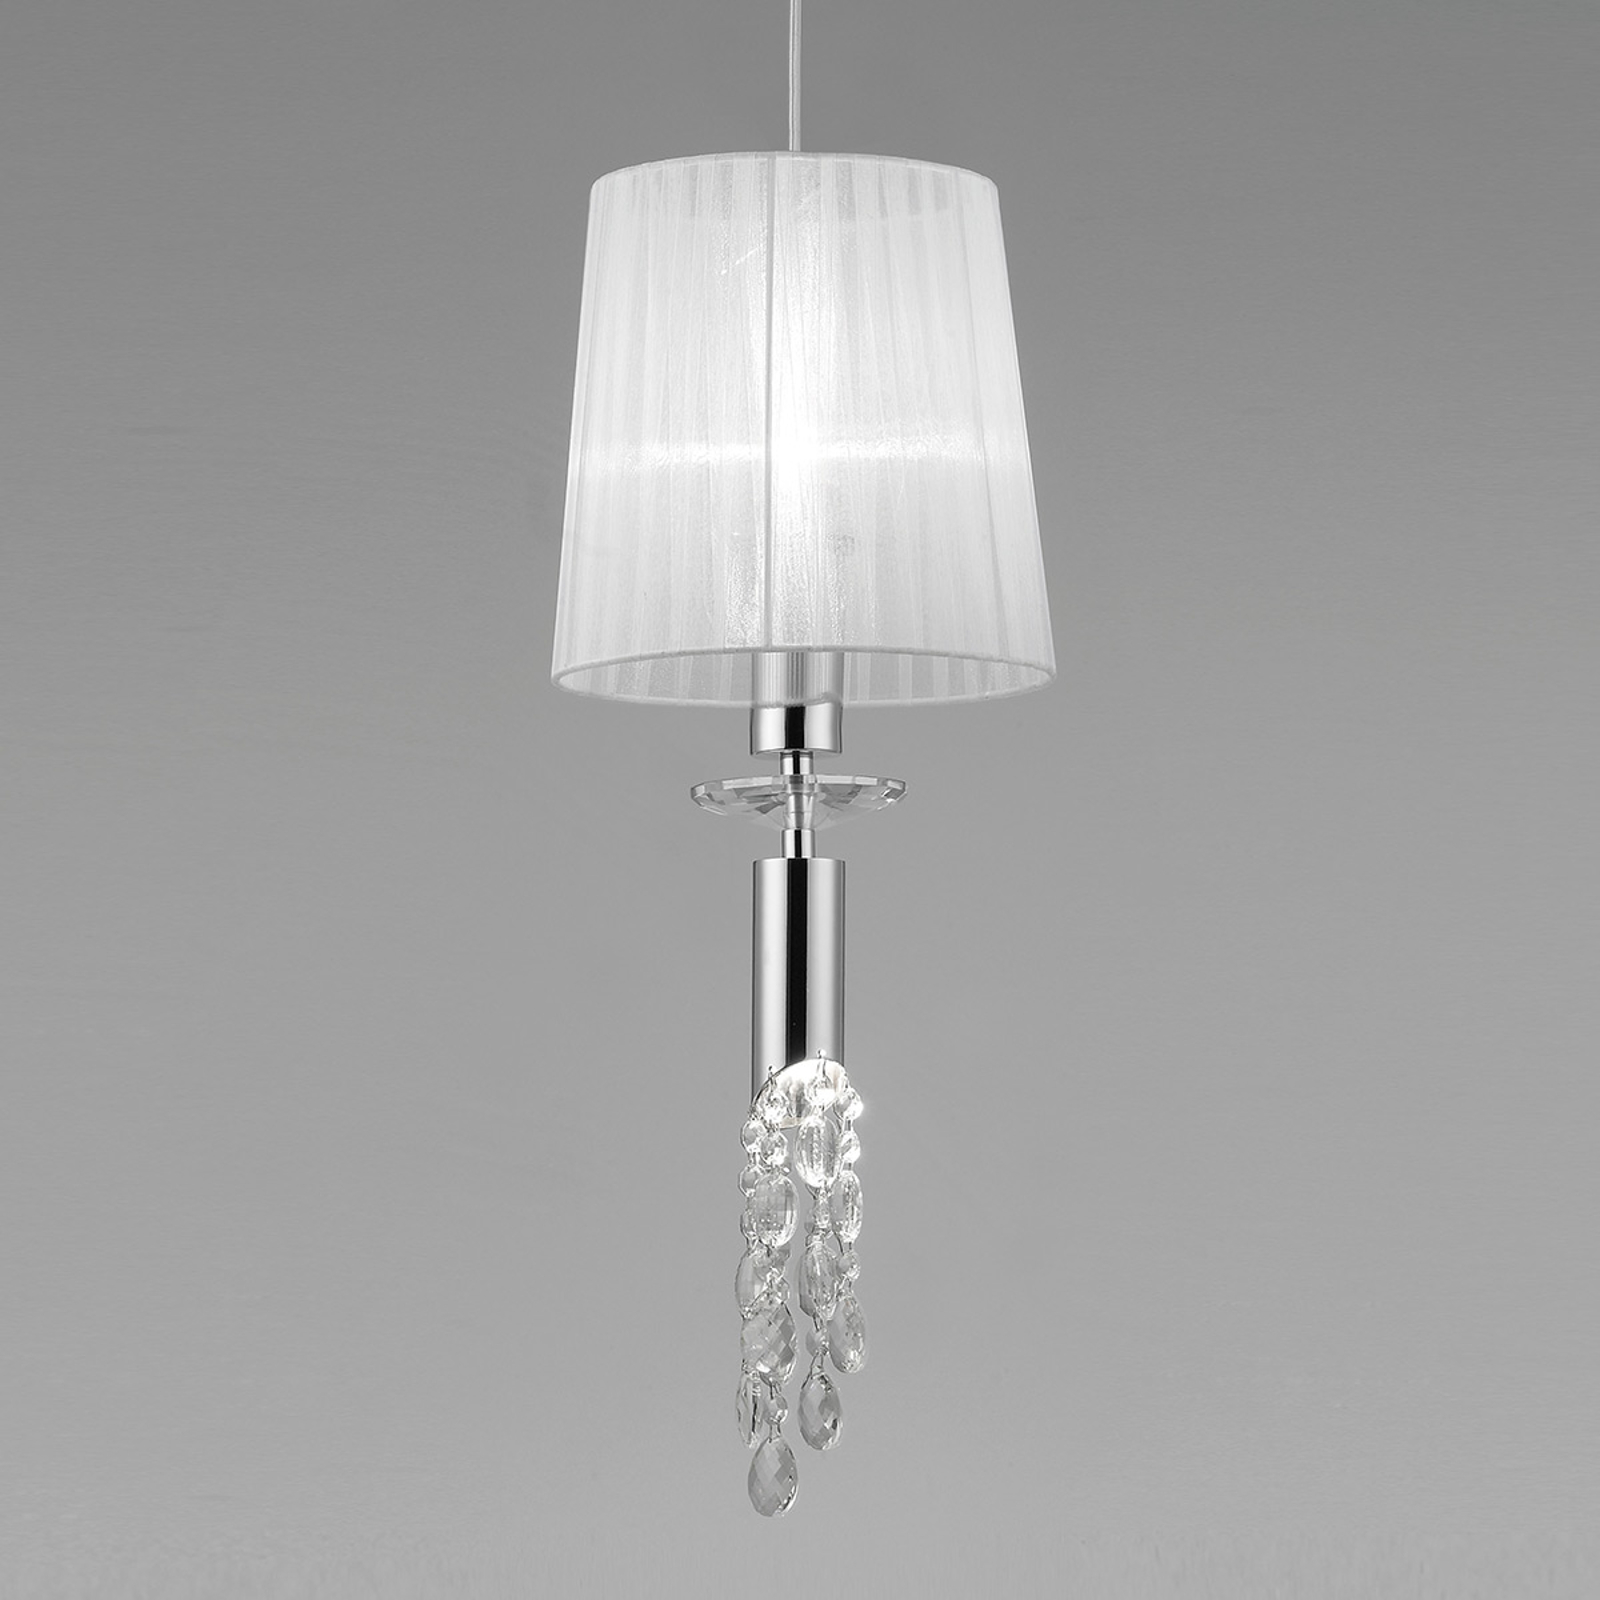 Suspension Lilja avec cristaux, à 1 lampe